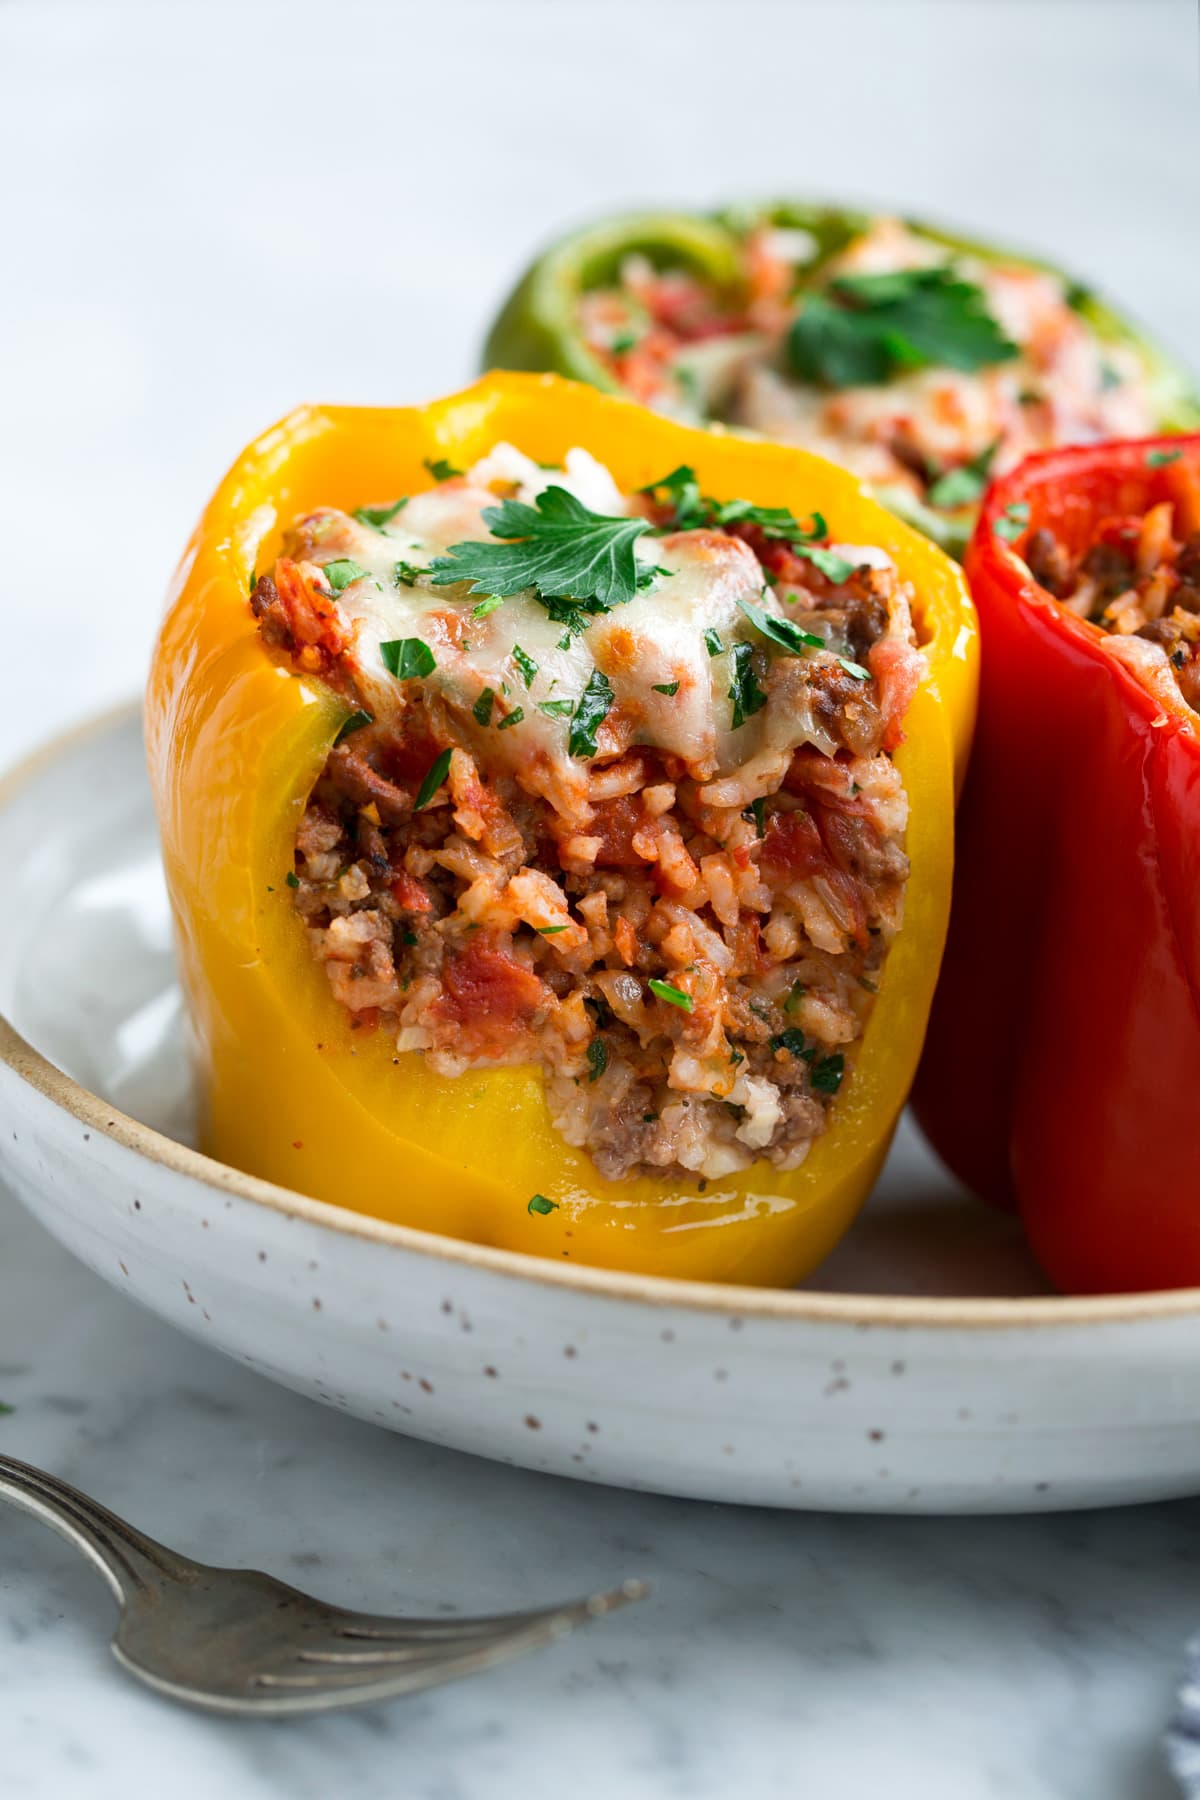 Stuffed Bell Peppers cut in half to show filling including ground beef, rice, tomato sauce and cheese.